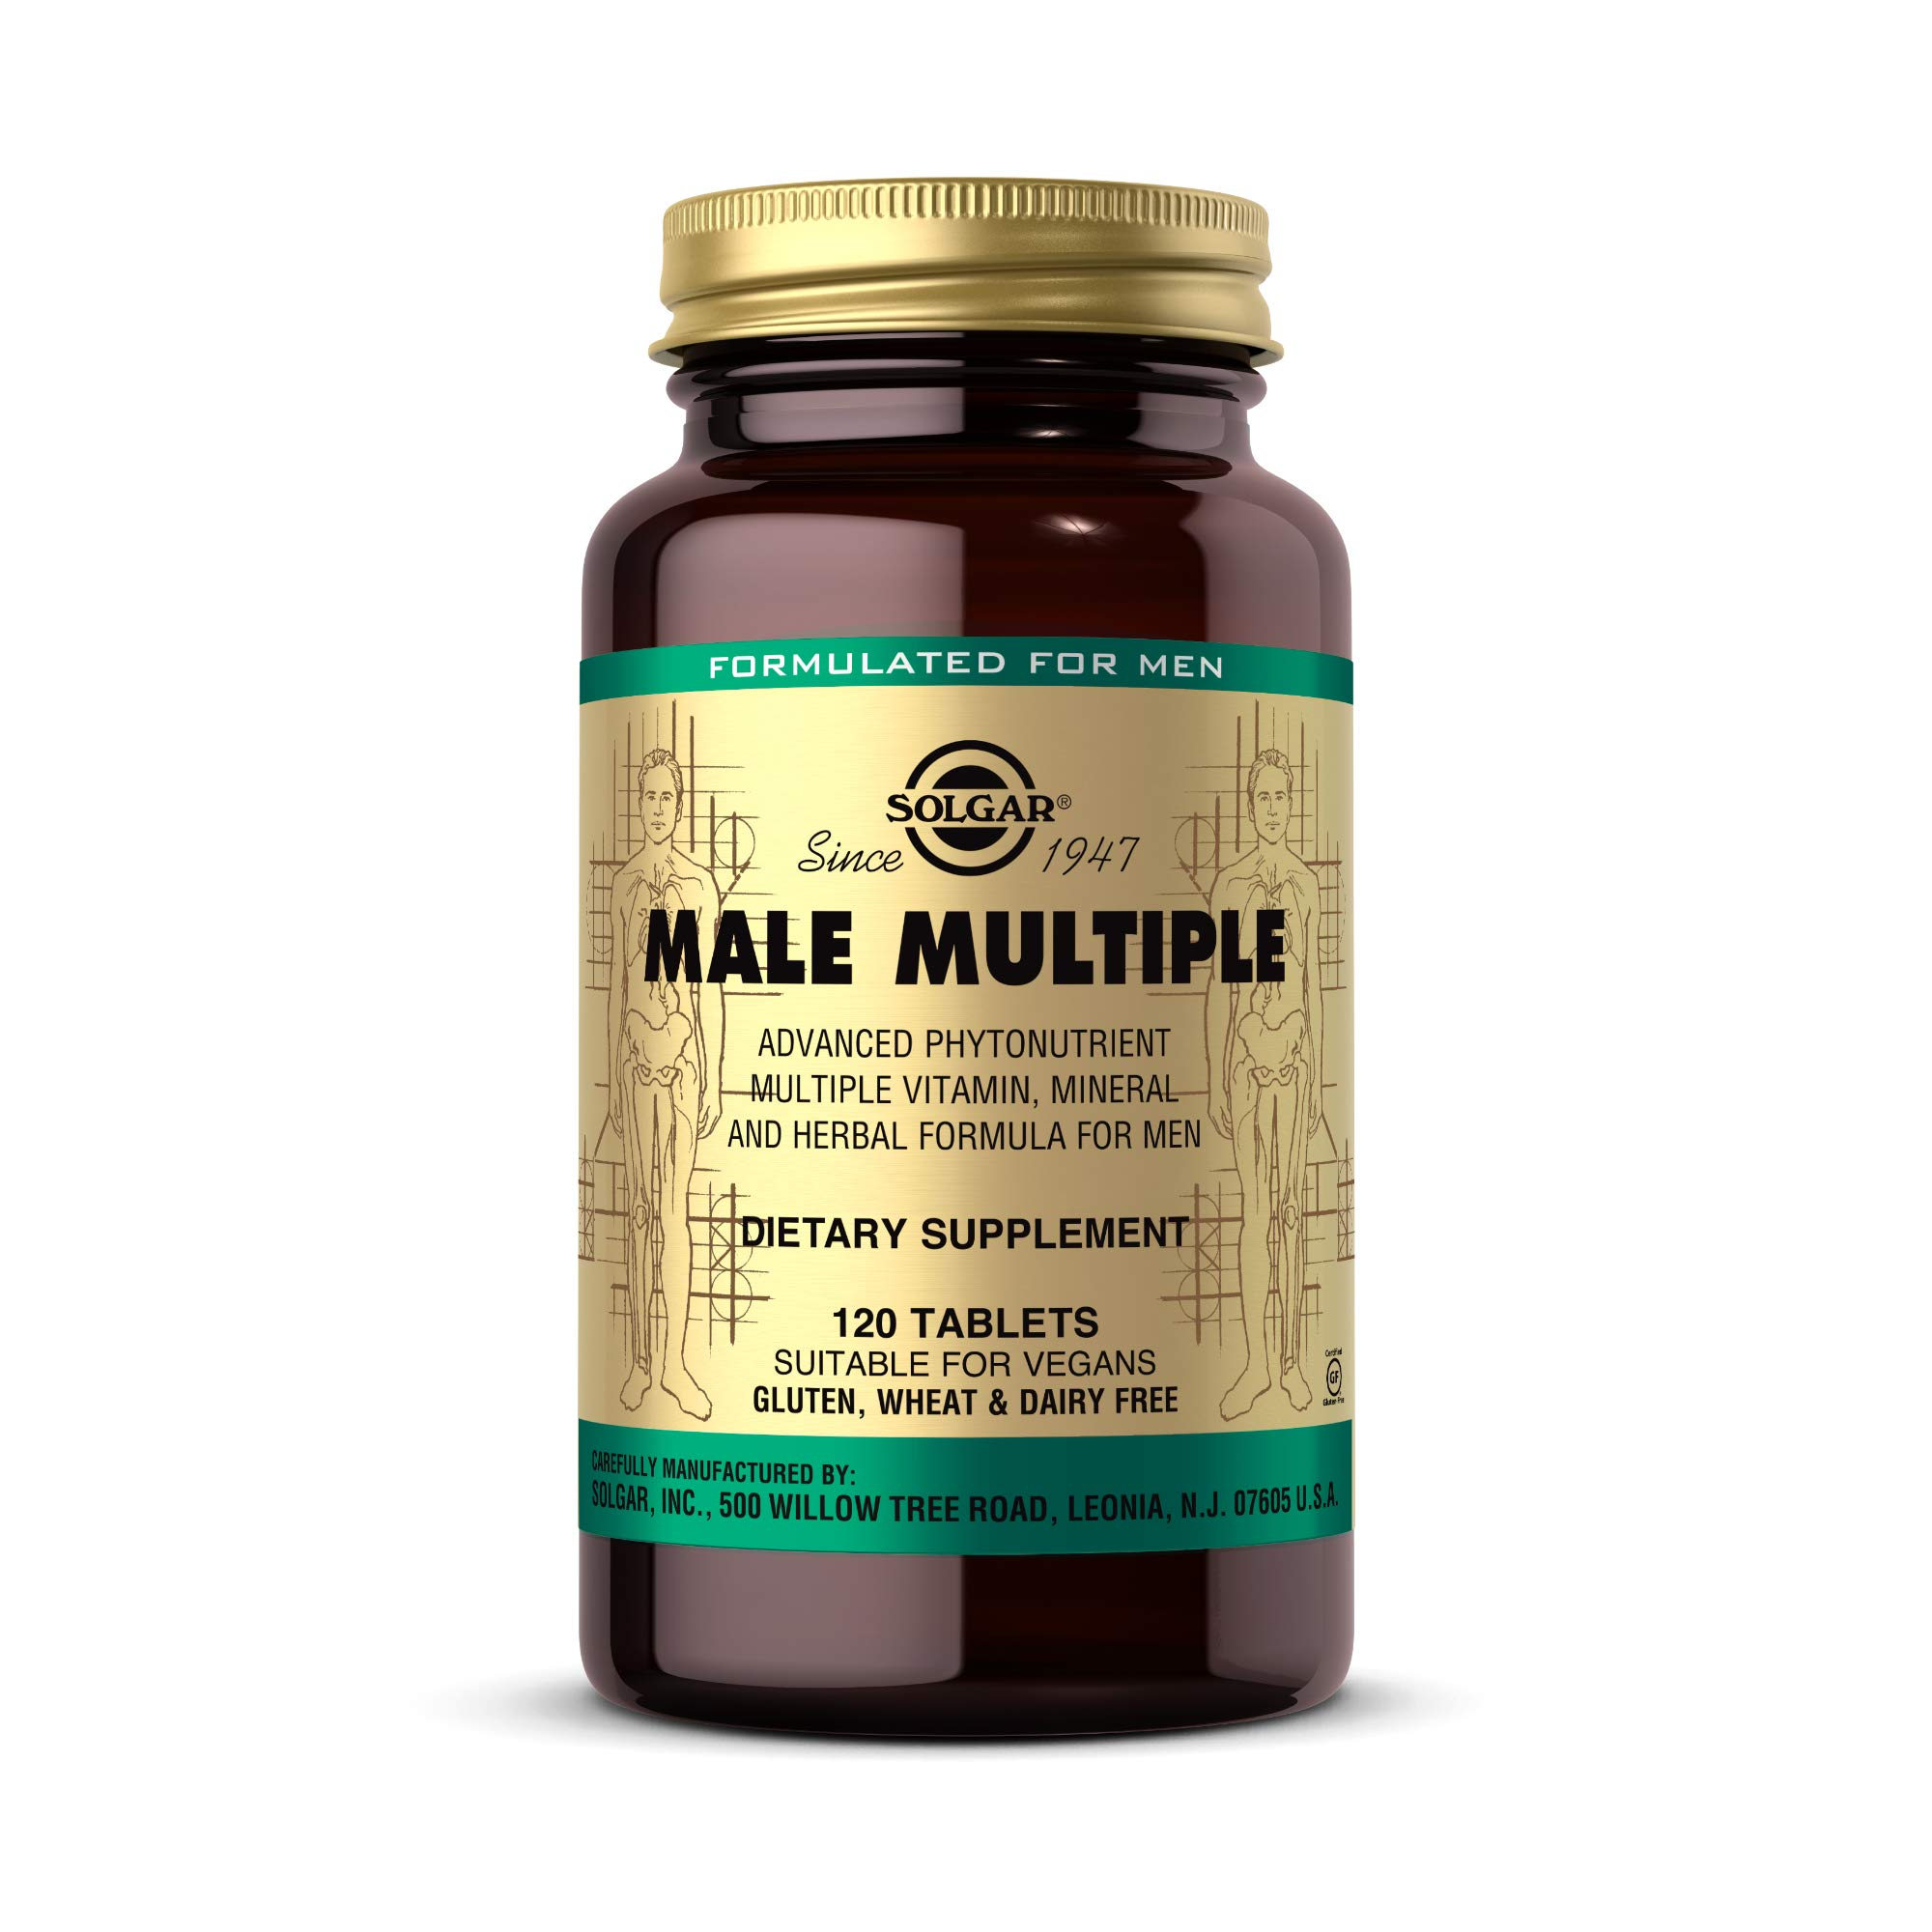 Solgar Male Multiple, 120 Tablets - Multivitamin, Mineral & Herbal Formula for Men - Advanced Phytonutrient - Vegan, Gluten Free, Dairy Free - 40 Servings